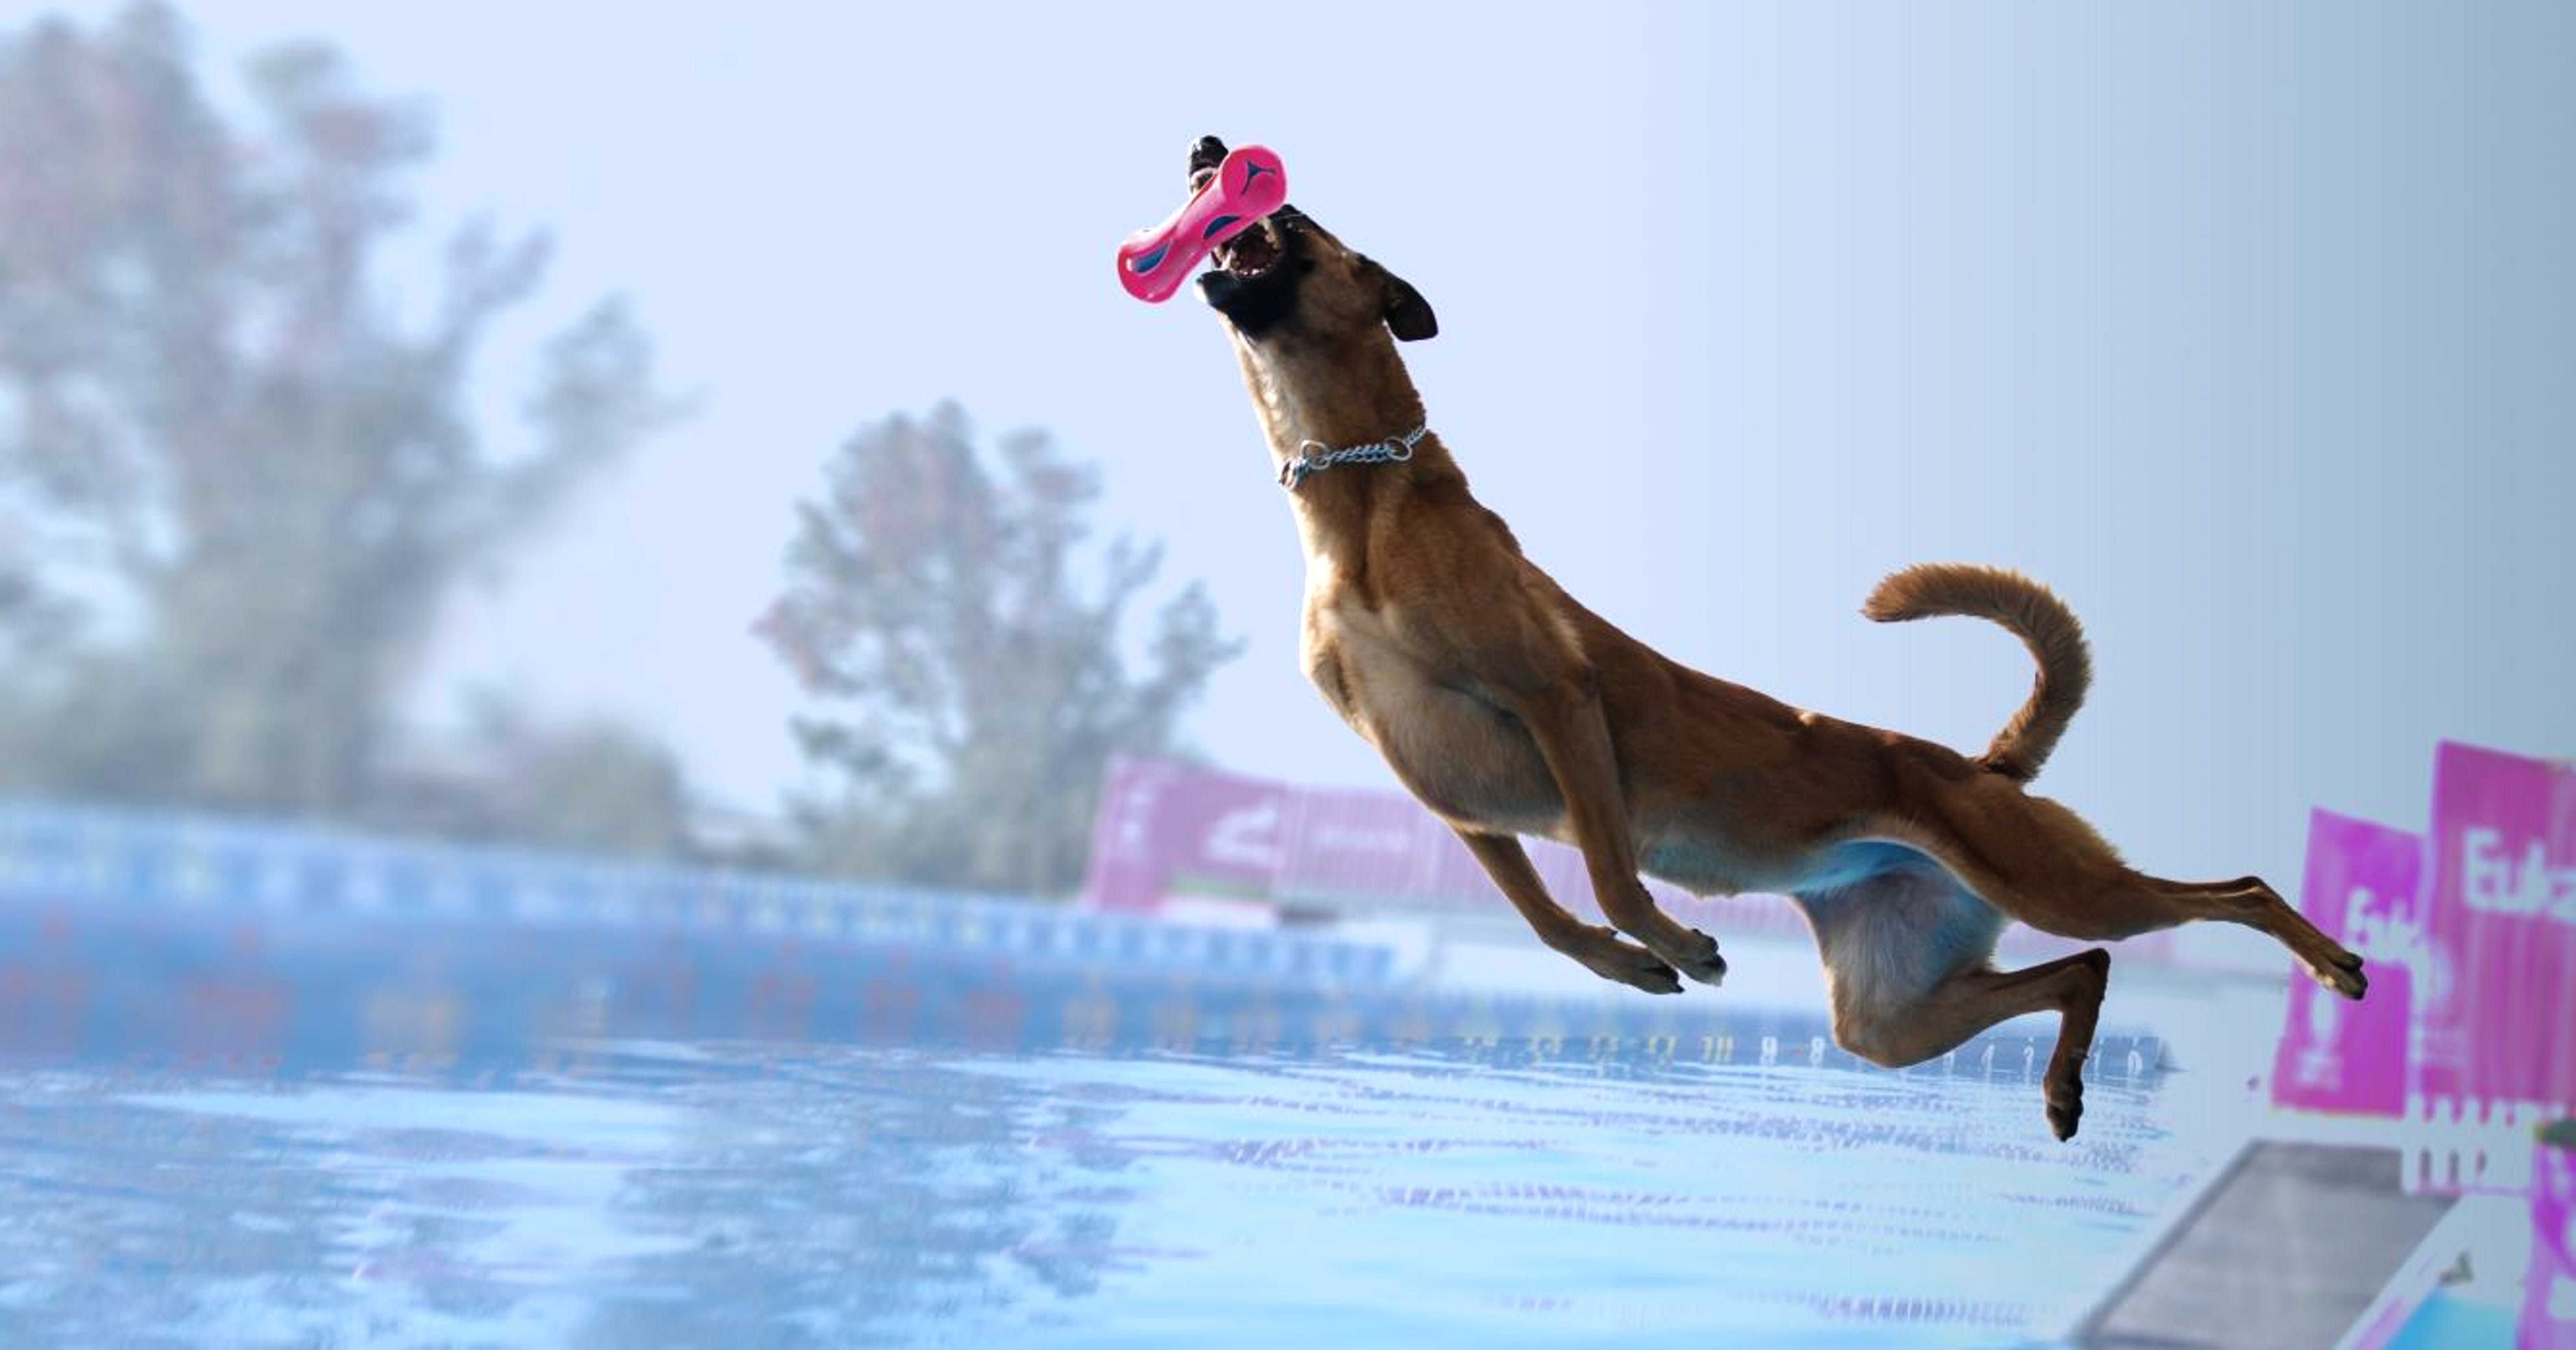 Brown dog launching off a dock to retrieve toy suspended over a pool